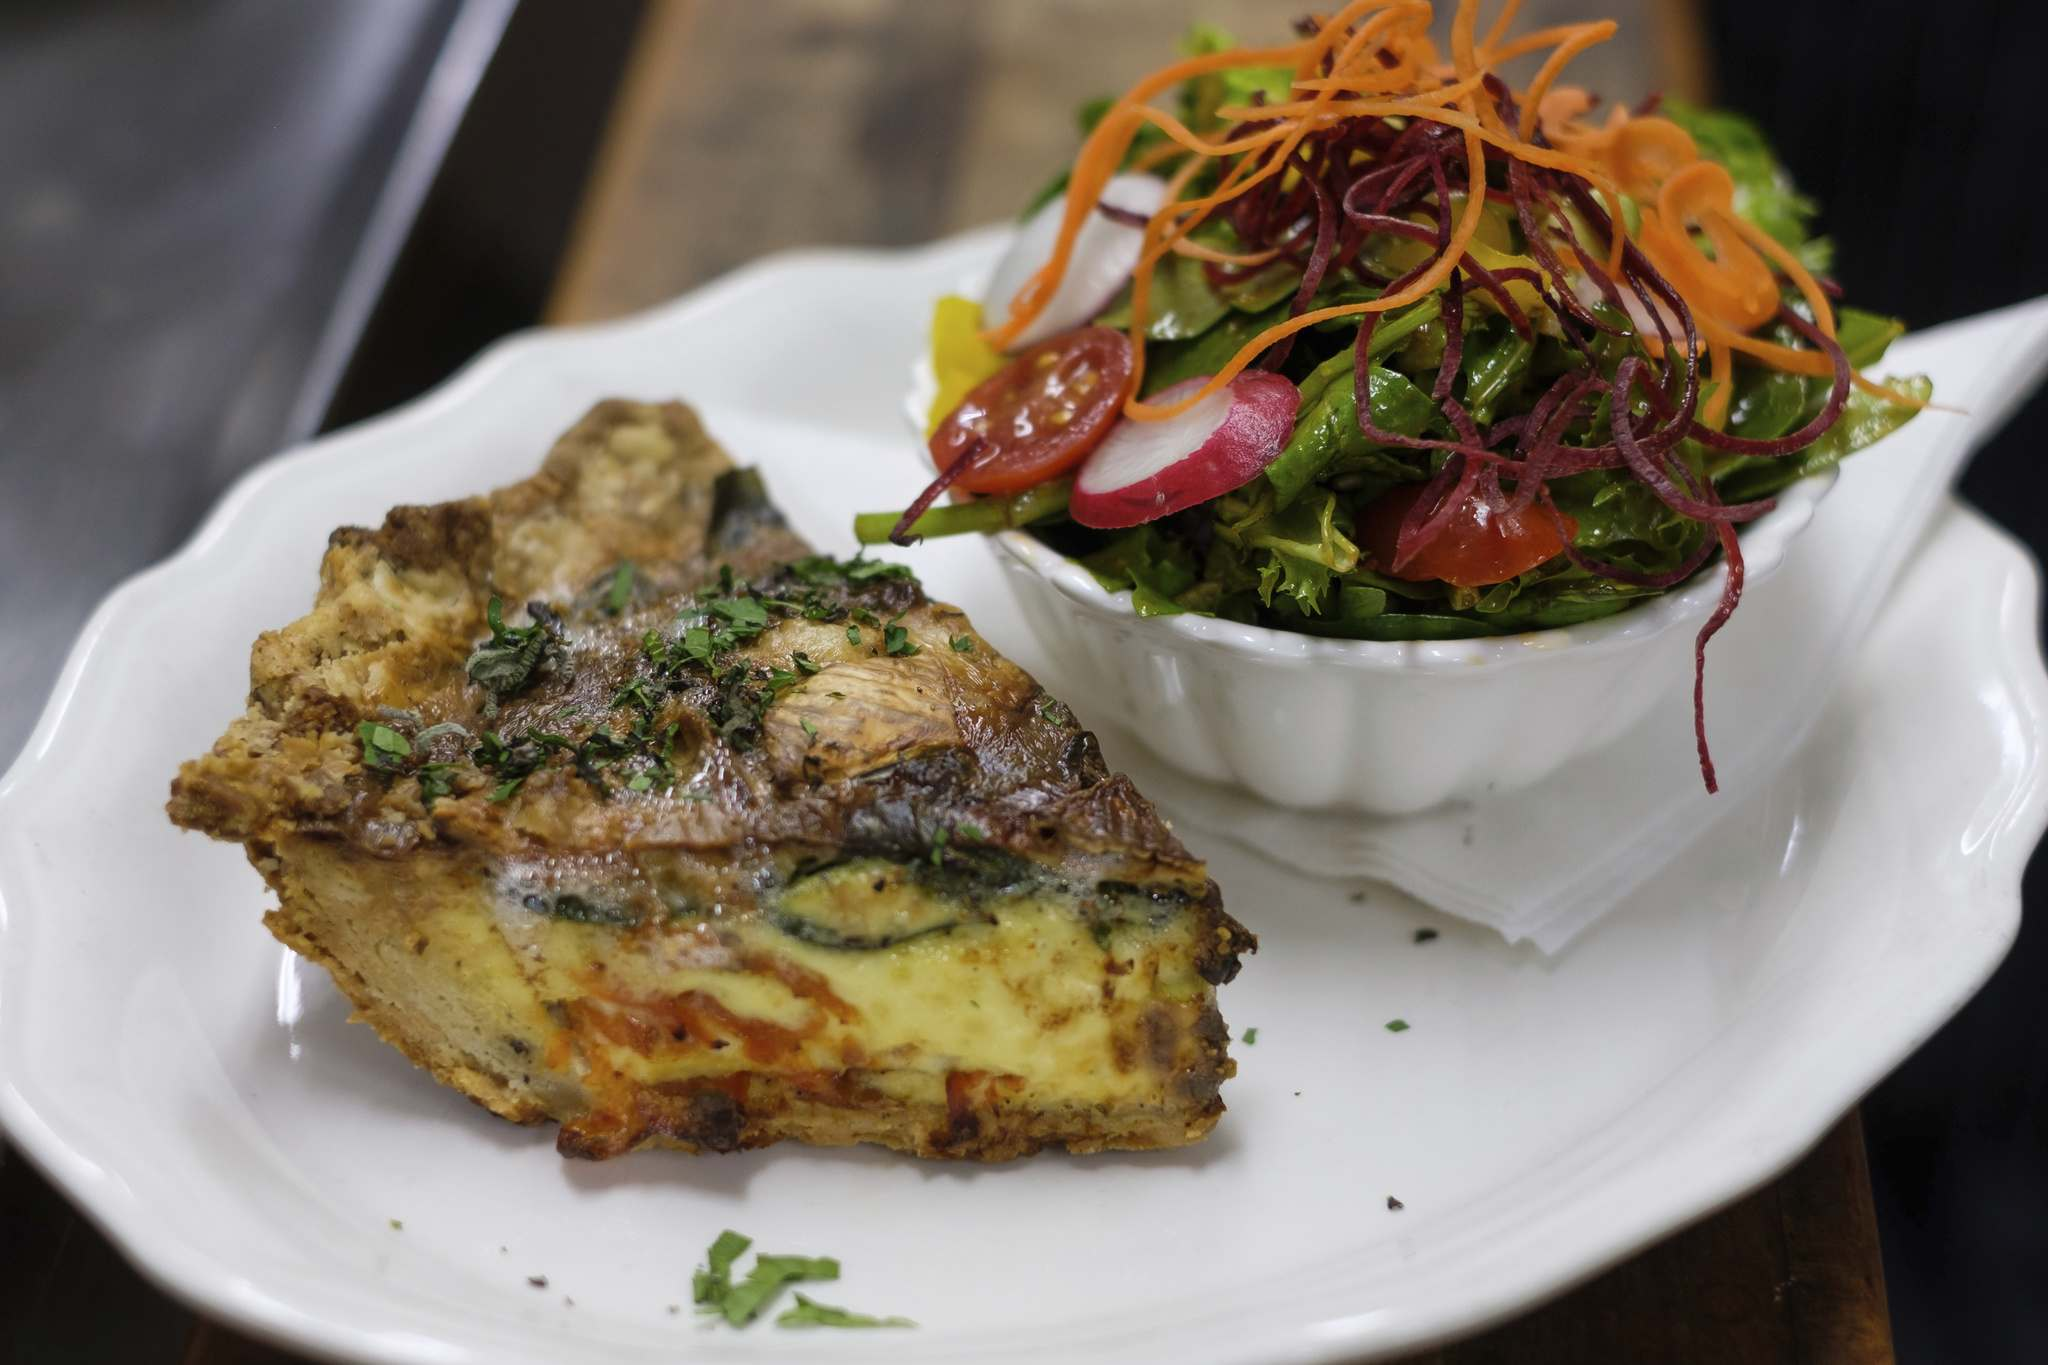 Rest Gare&rsquo;s Quiche with a side of House Salad.</p>